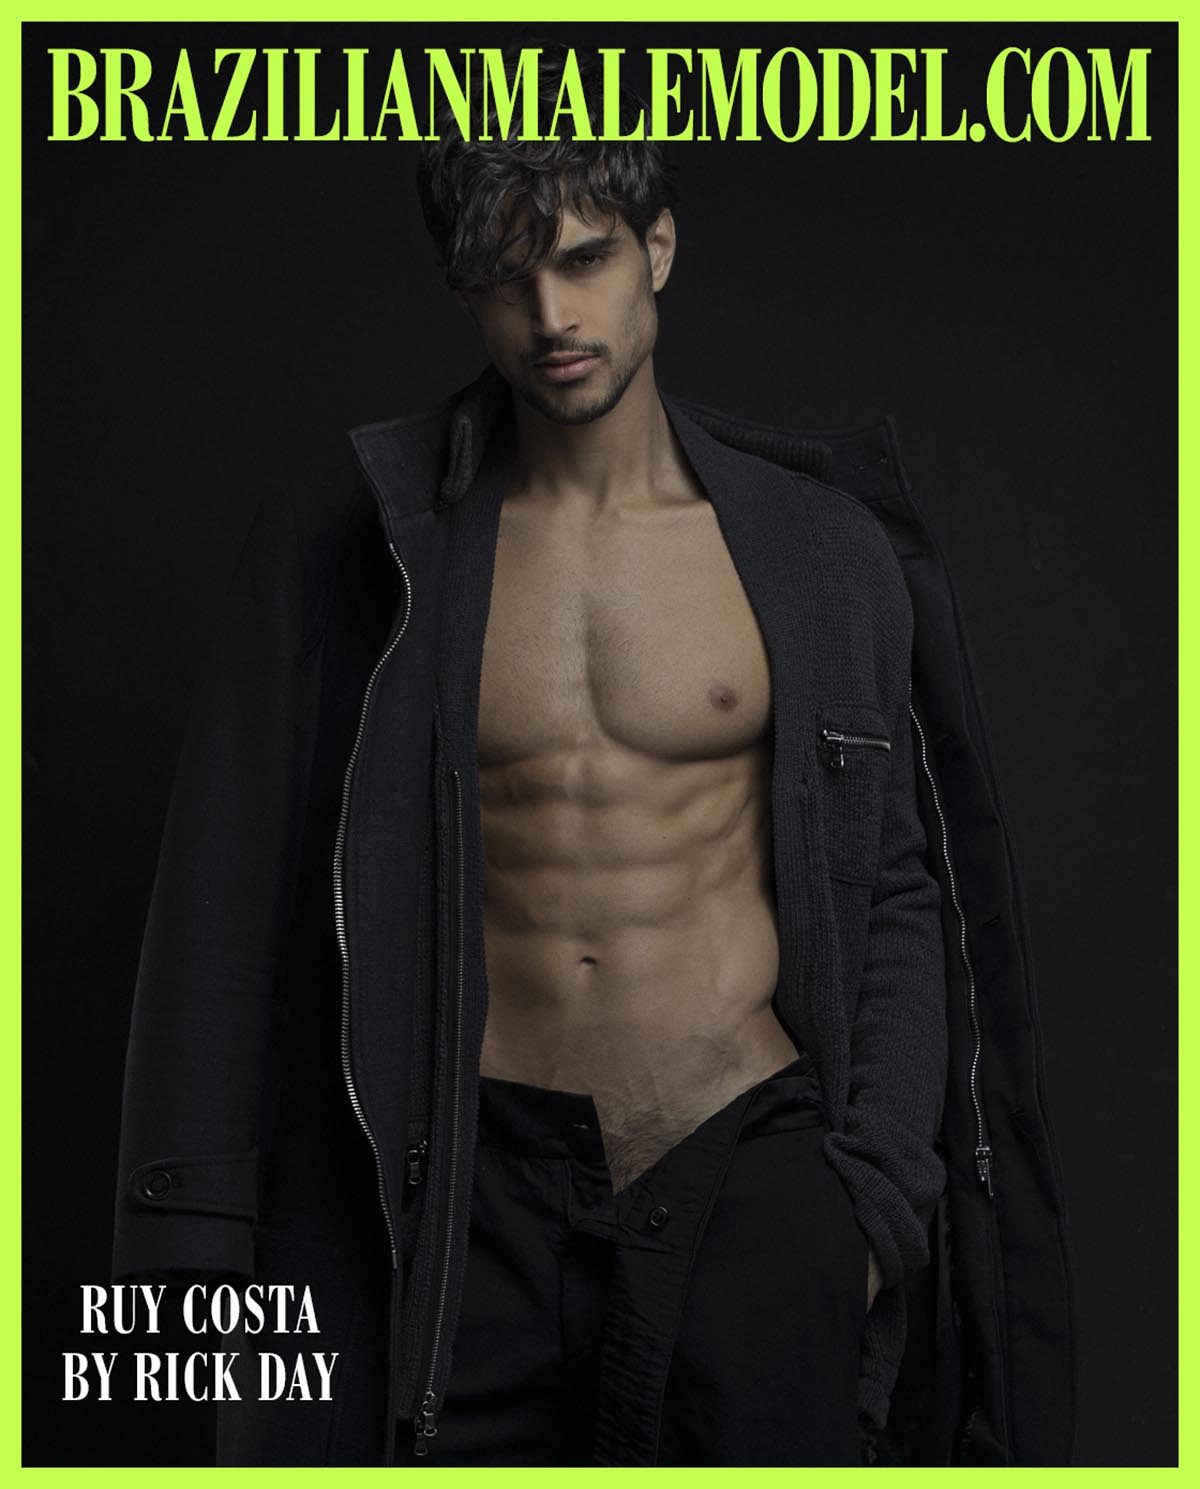 Ruy Costa by Rick Day